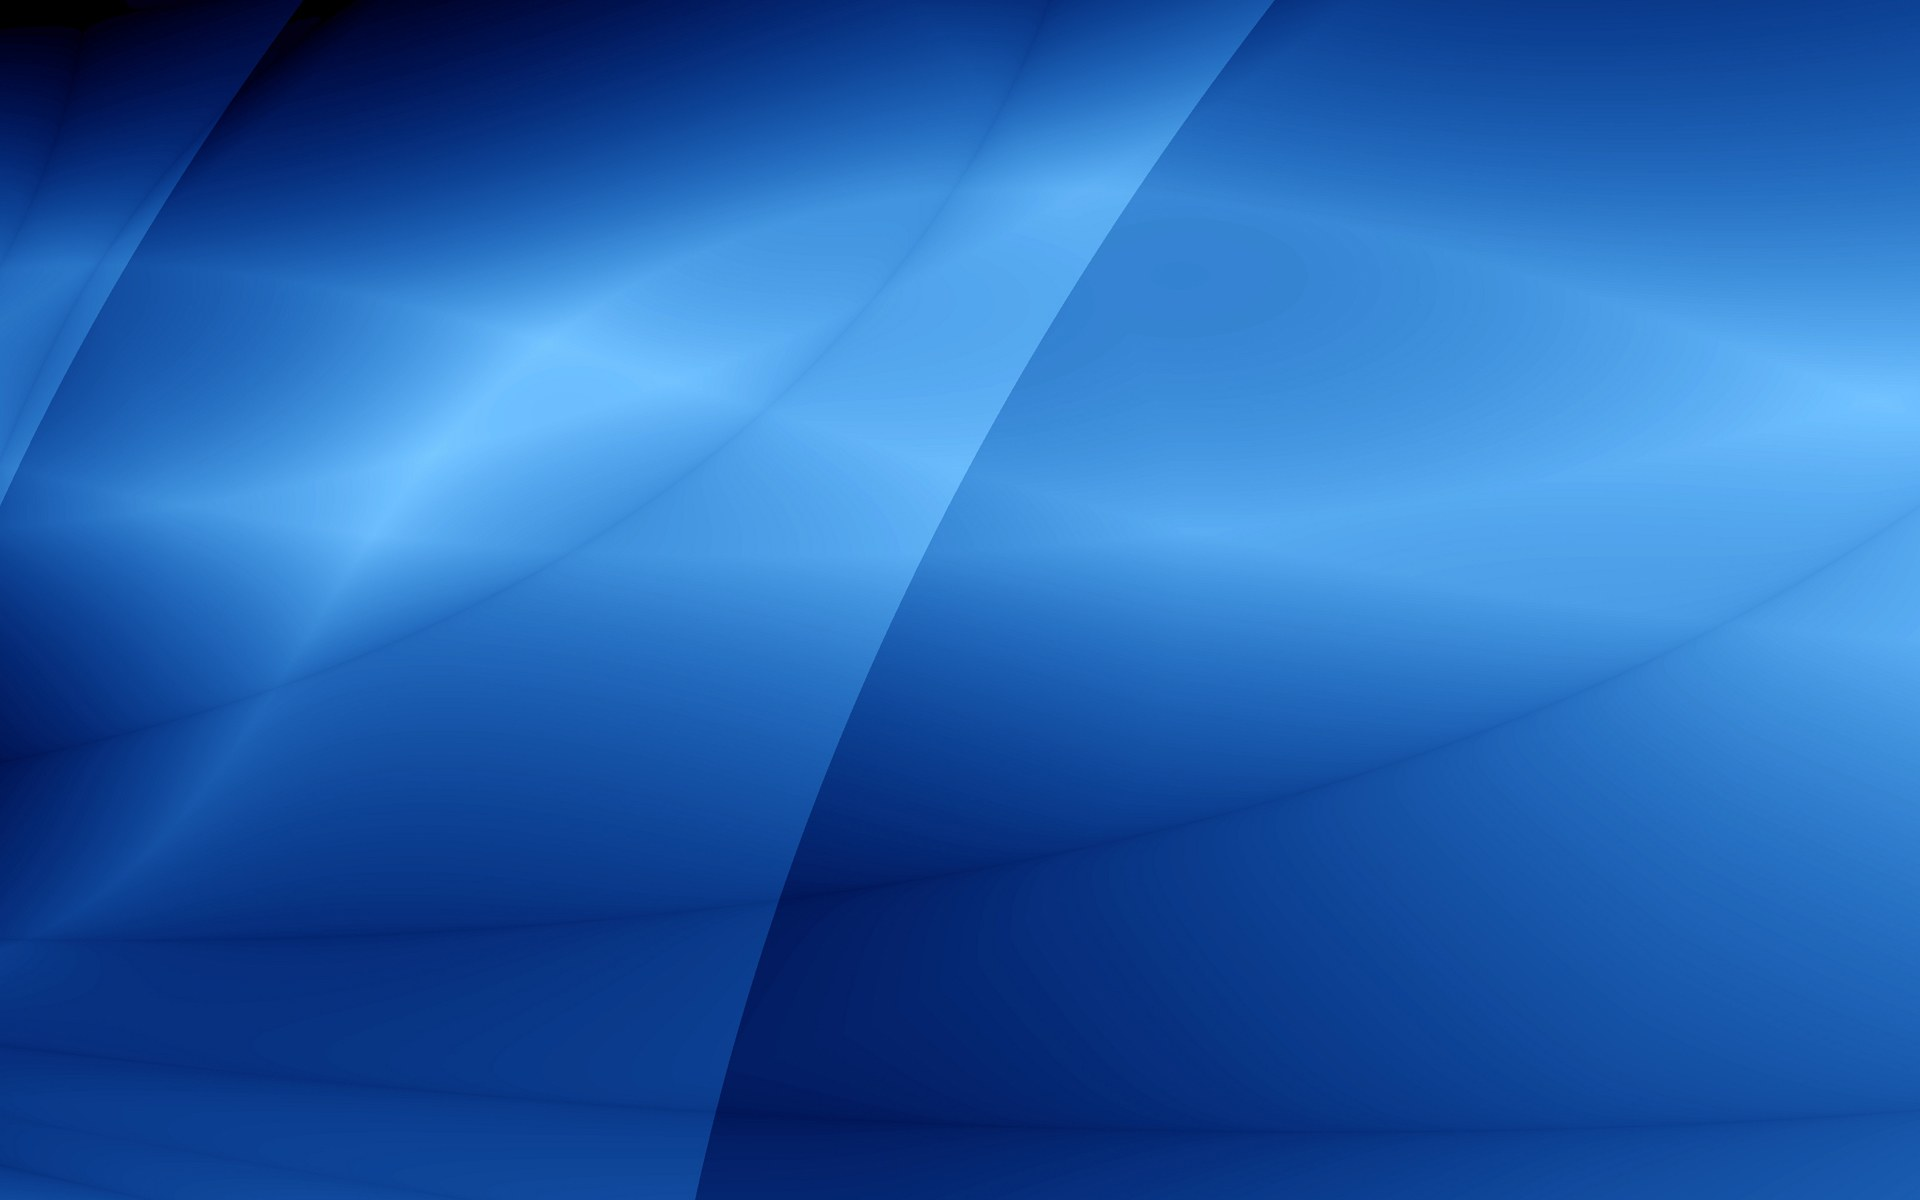 abstract-blue-backgrounds-40